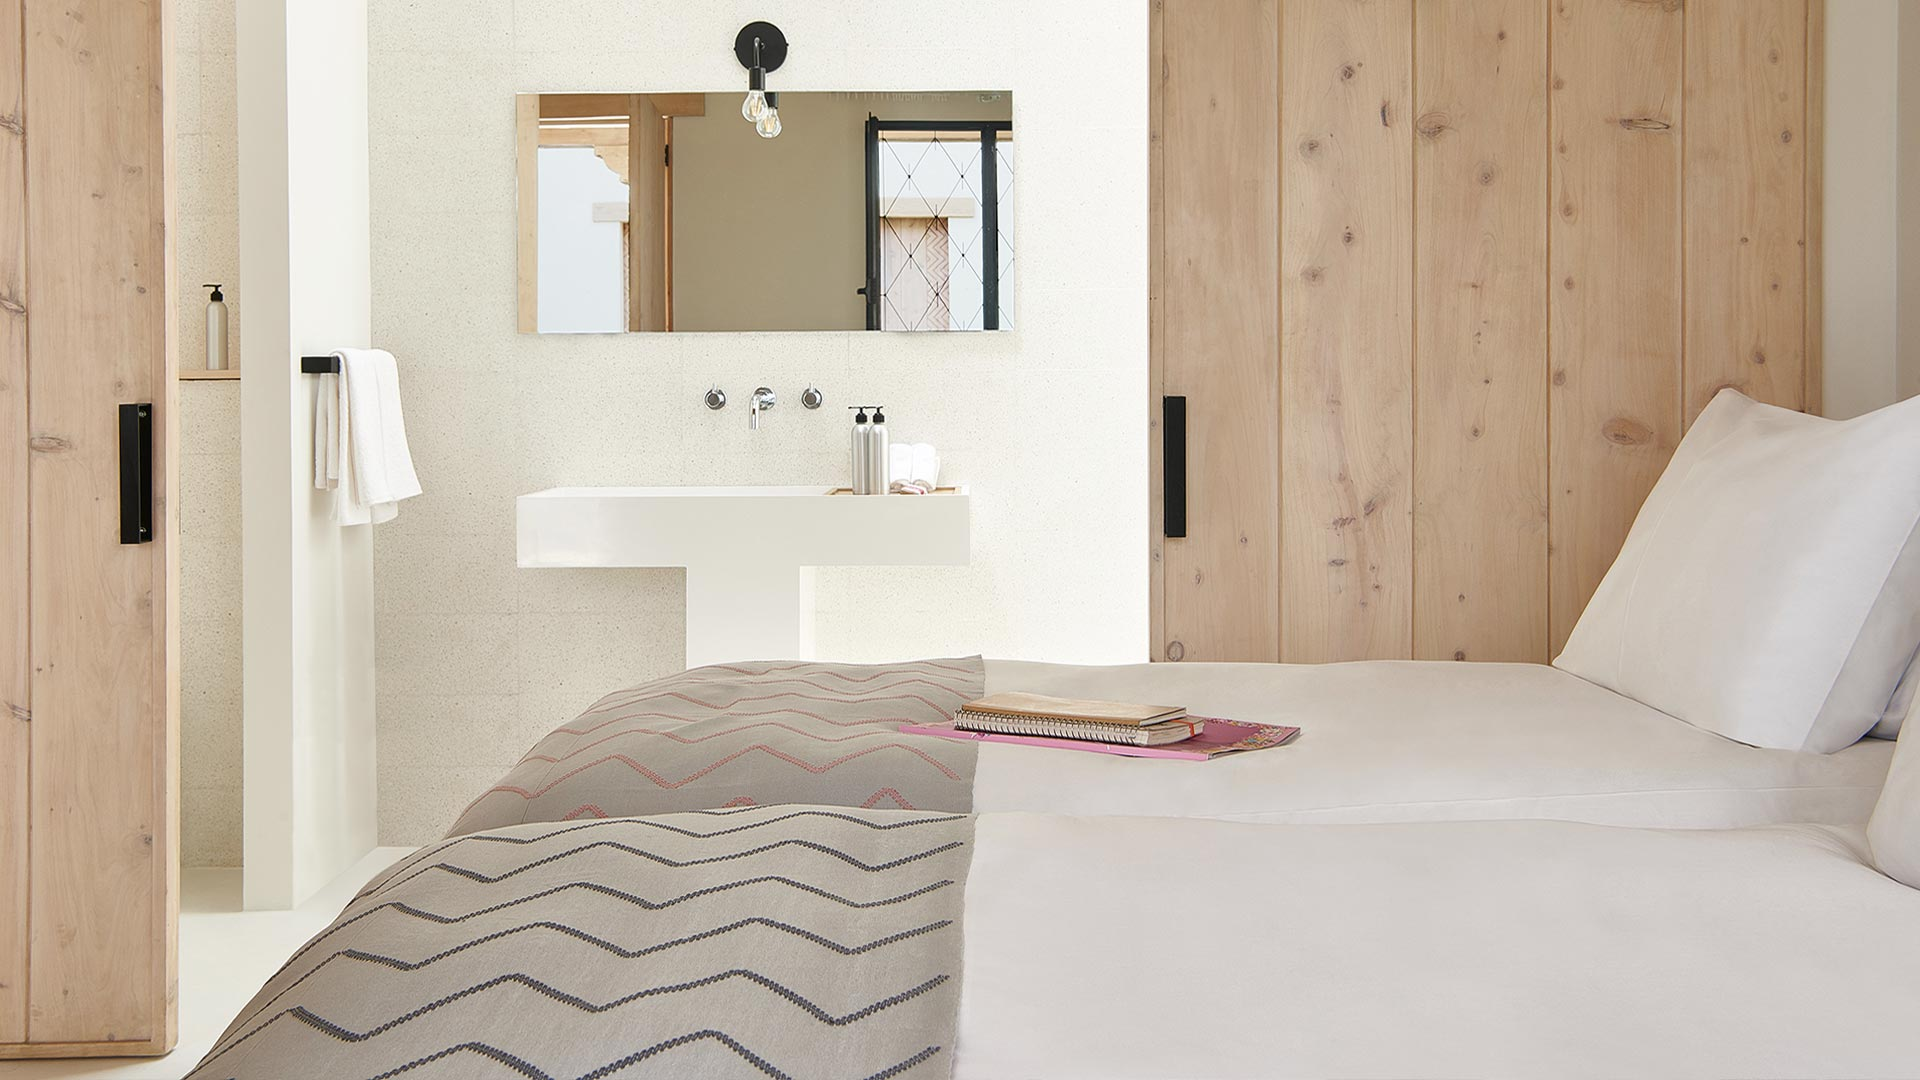 Pila Room  / Sliding doors reveal the signature PILA sink. The typical T-shaped design is inspired by local washing culture that can still be found in the older homes and market squares of Antigua.